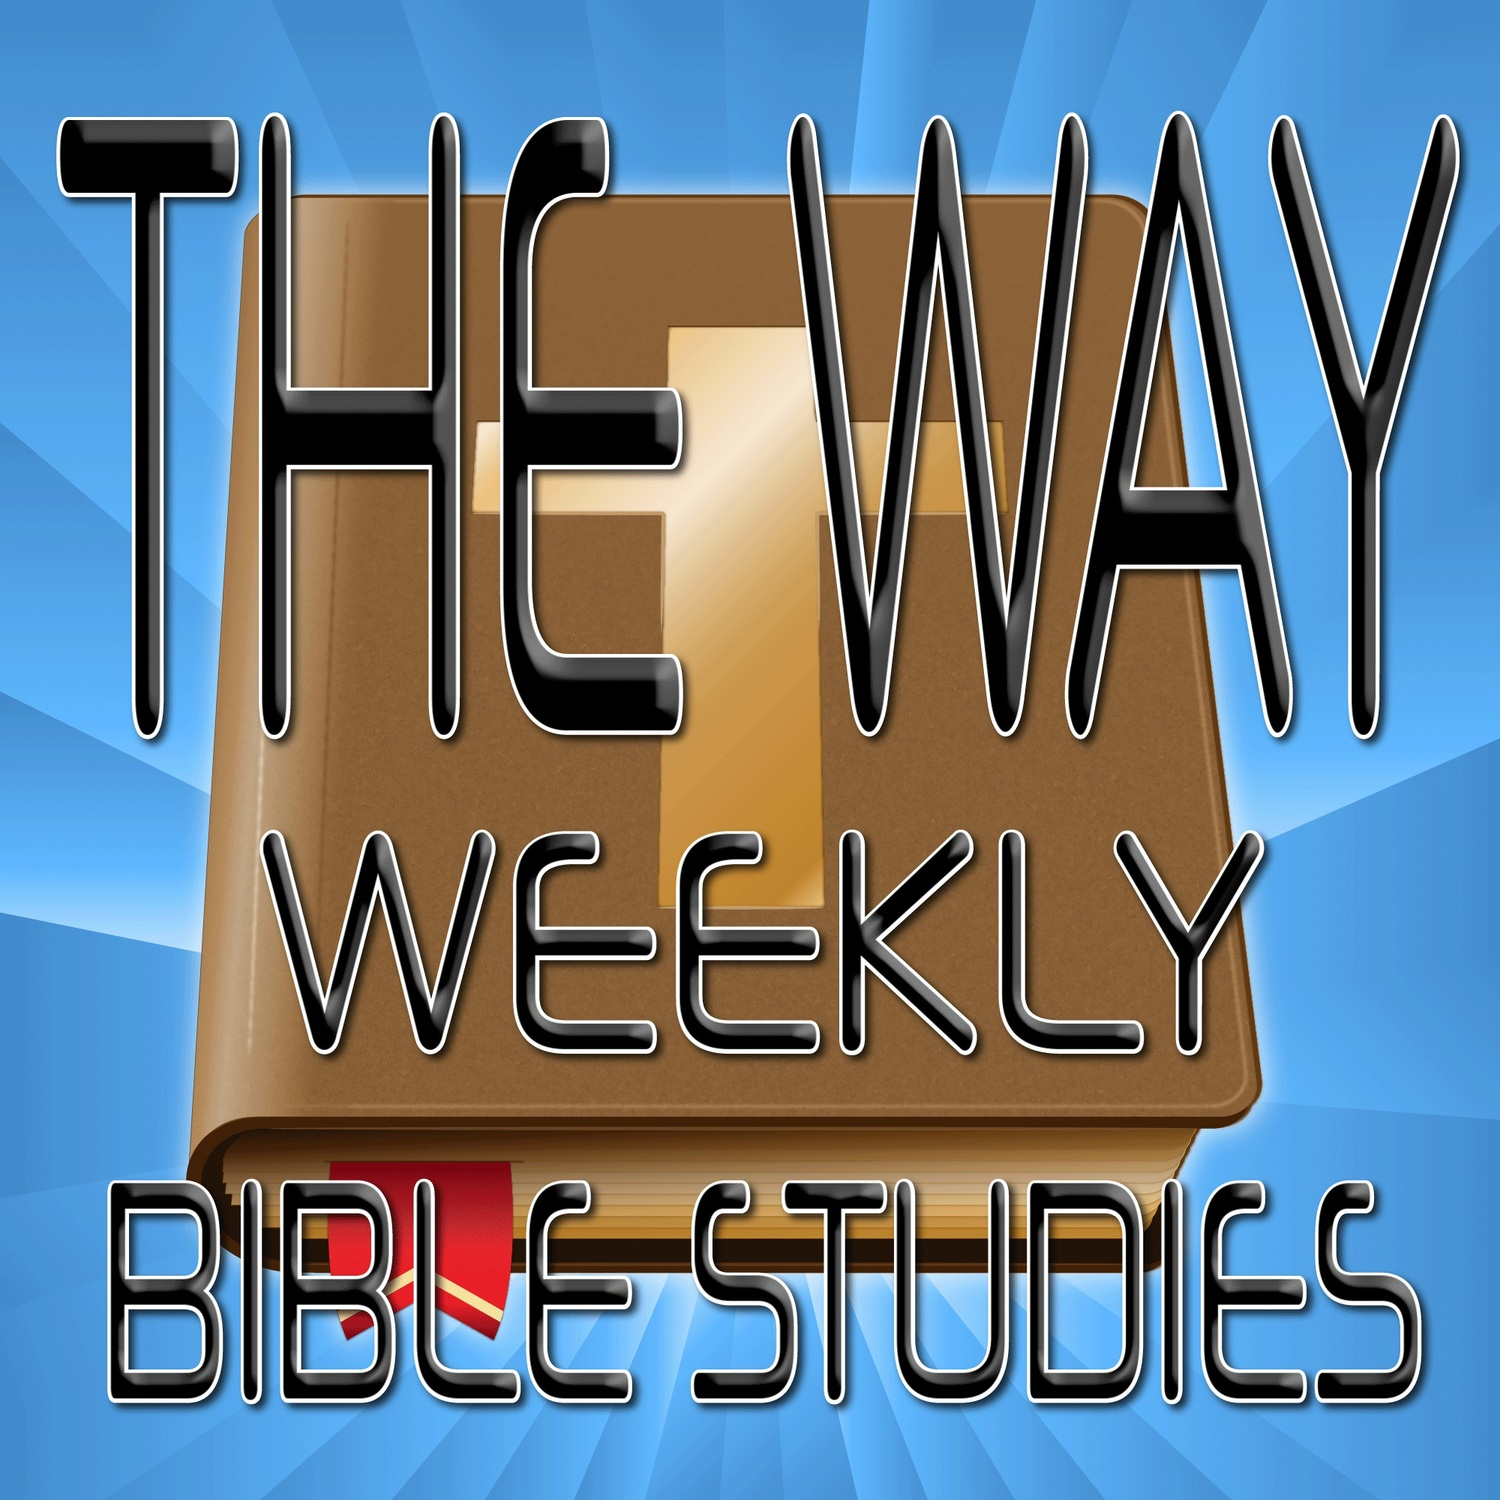 Podcast Bible Study - THE WAY MINISTRY